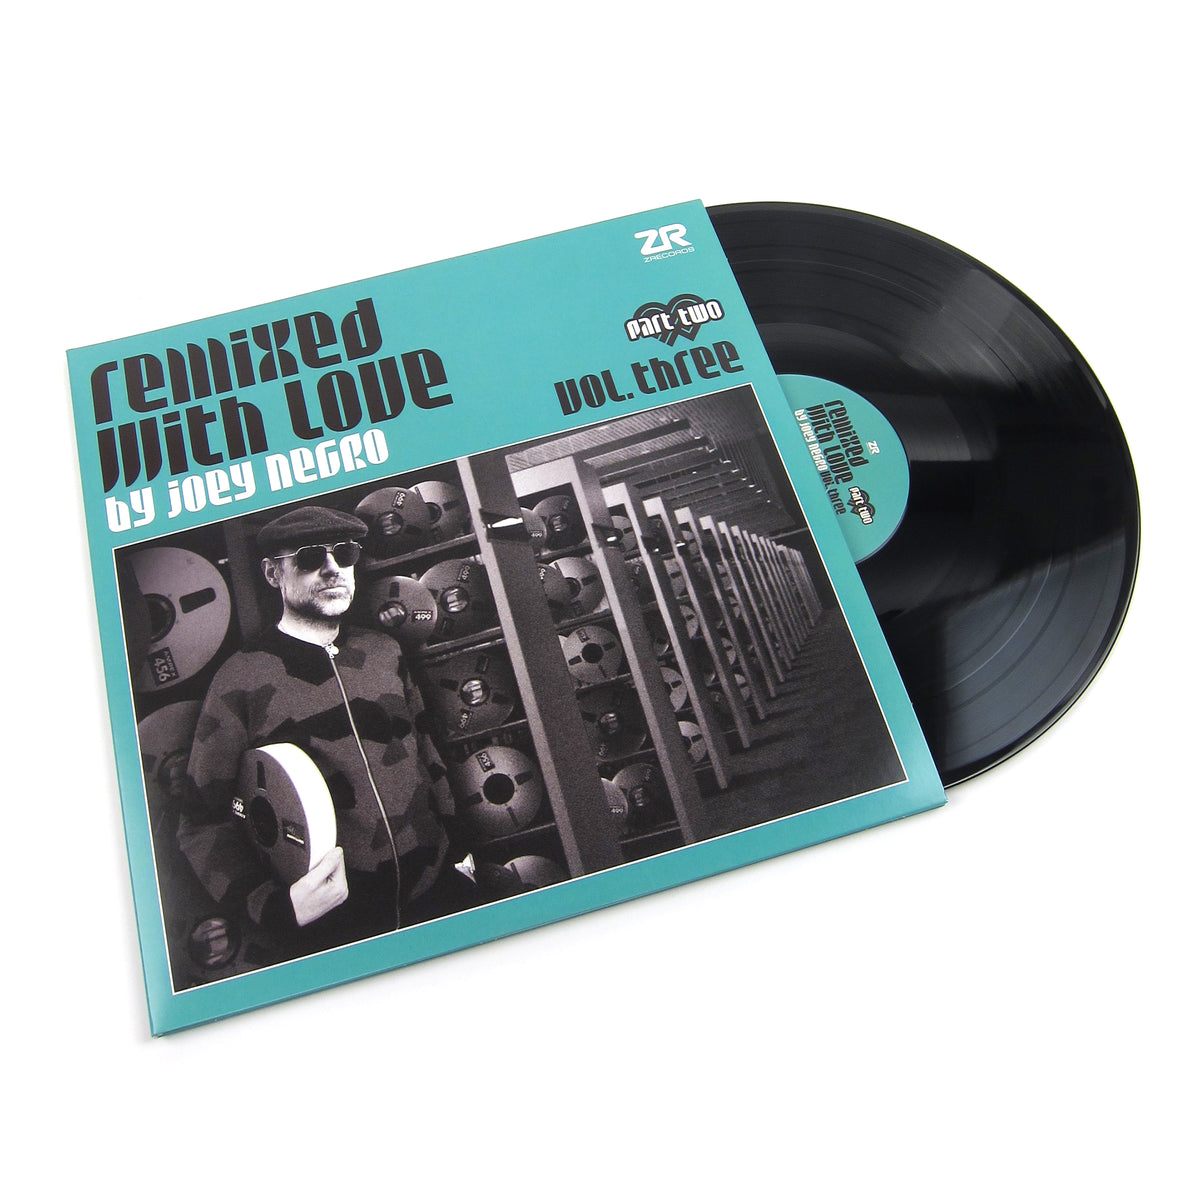 Joey Negro: Remixed With Love Vol.3 Pt.2 Vinyl 2LP